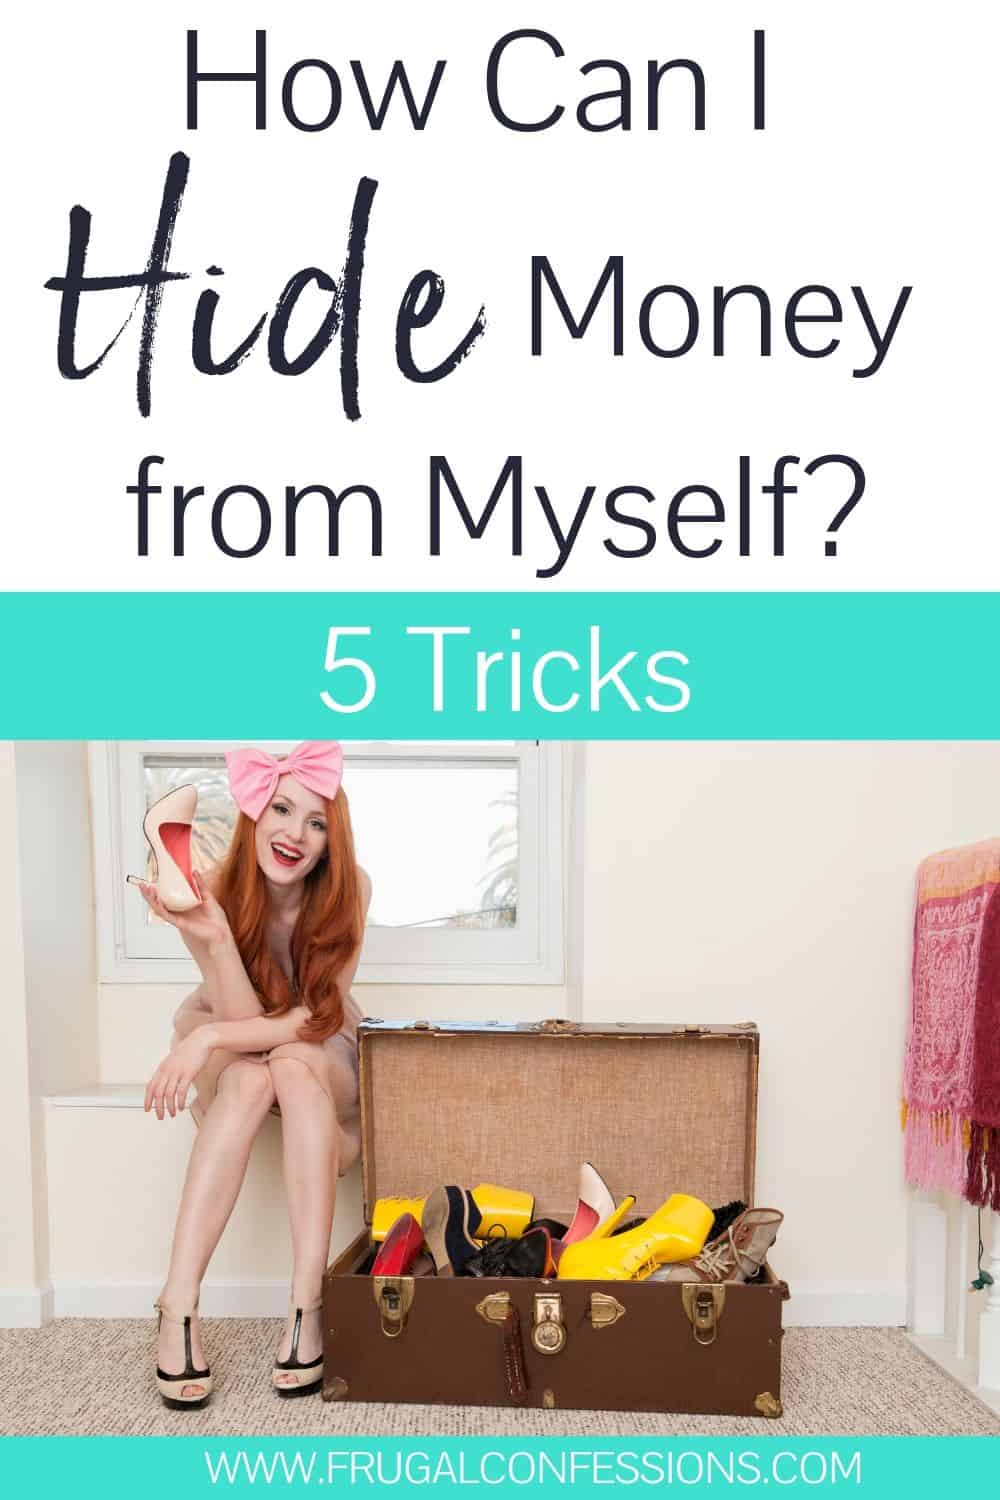 """woman in heels and long red hair, holding box of heels, text overlay """"how can I hide money from myself"""" 5 tricks"""""""